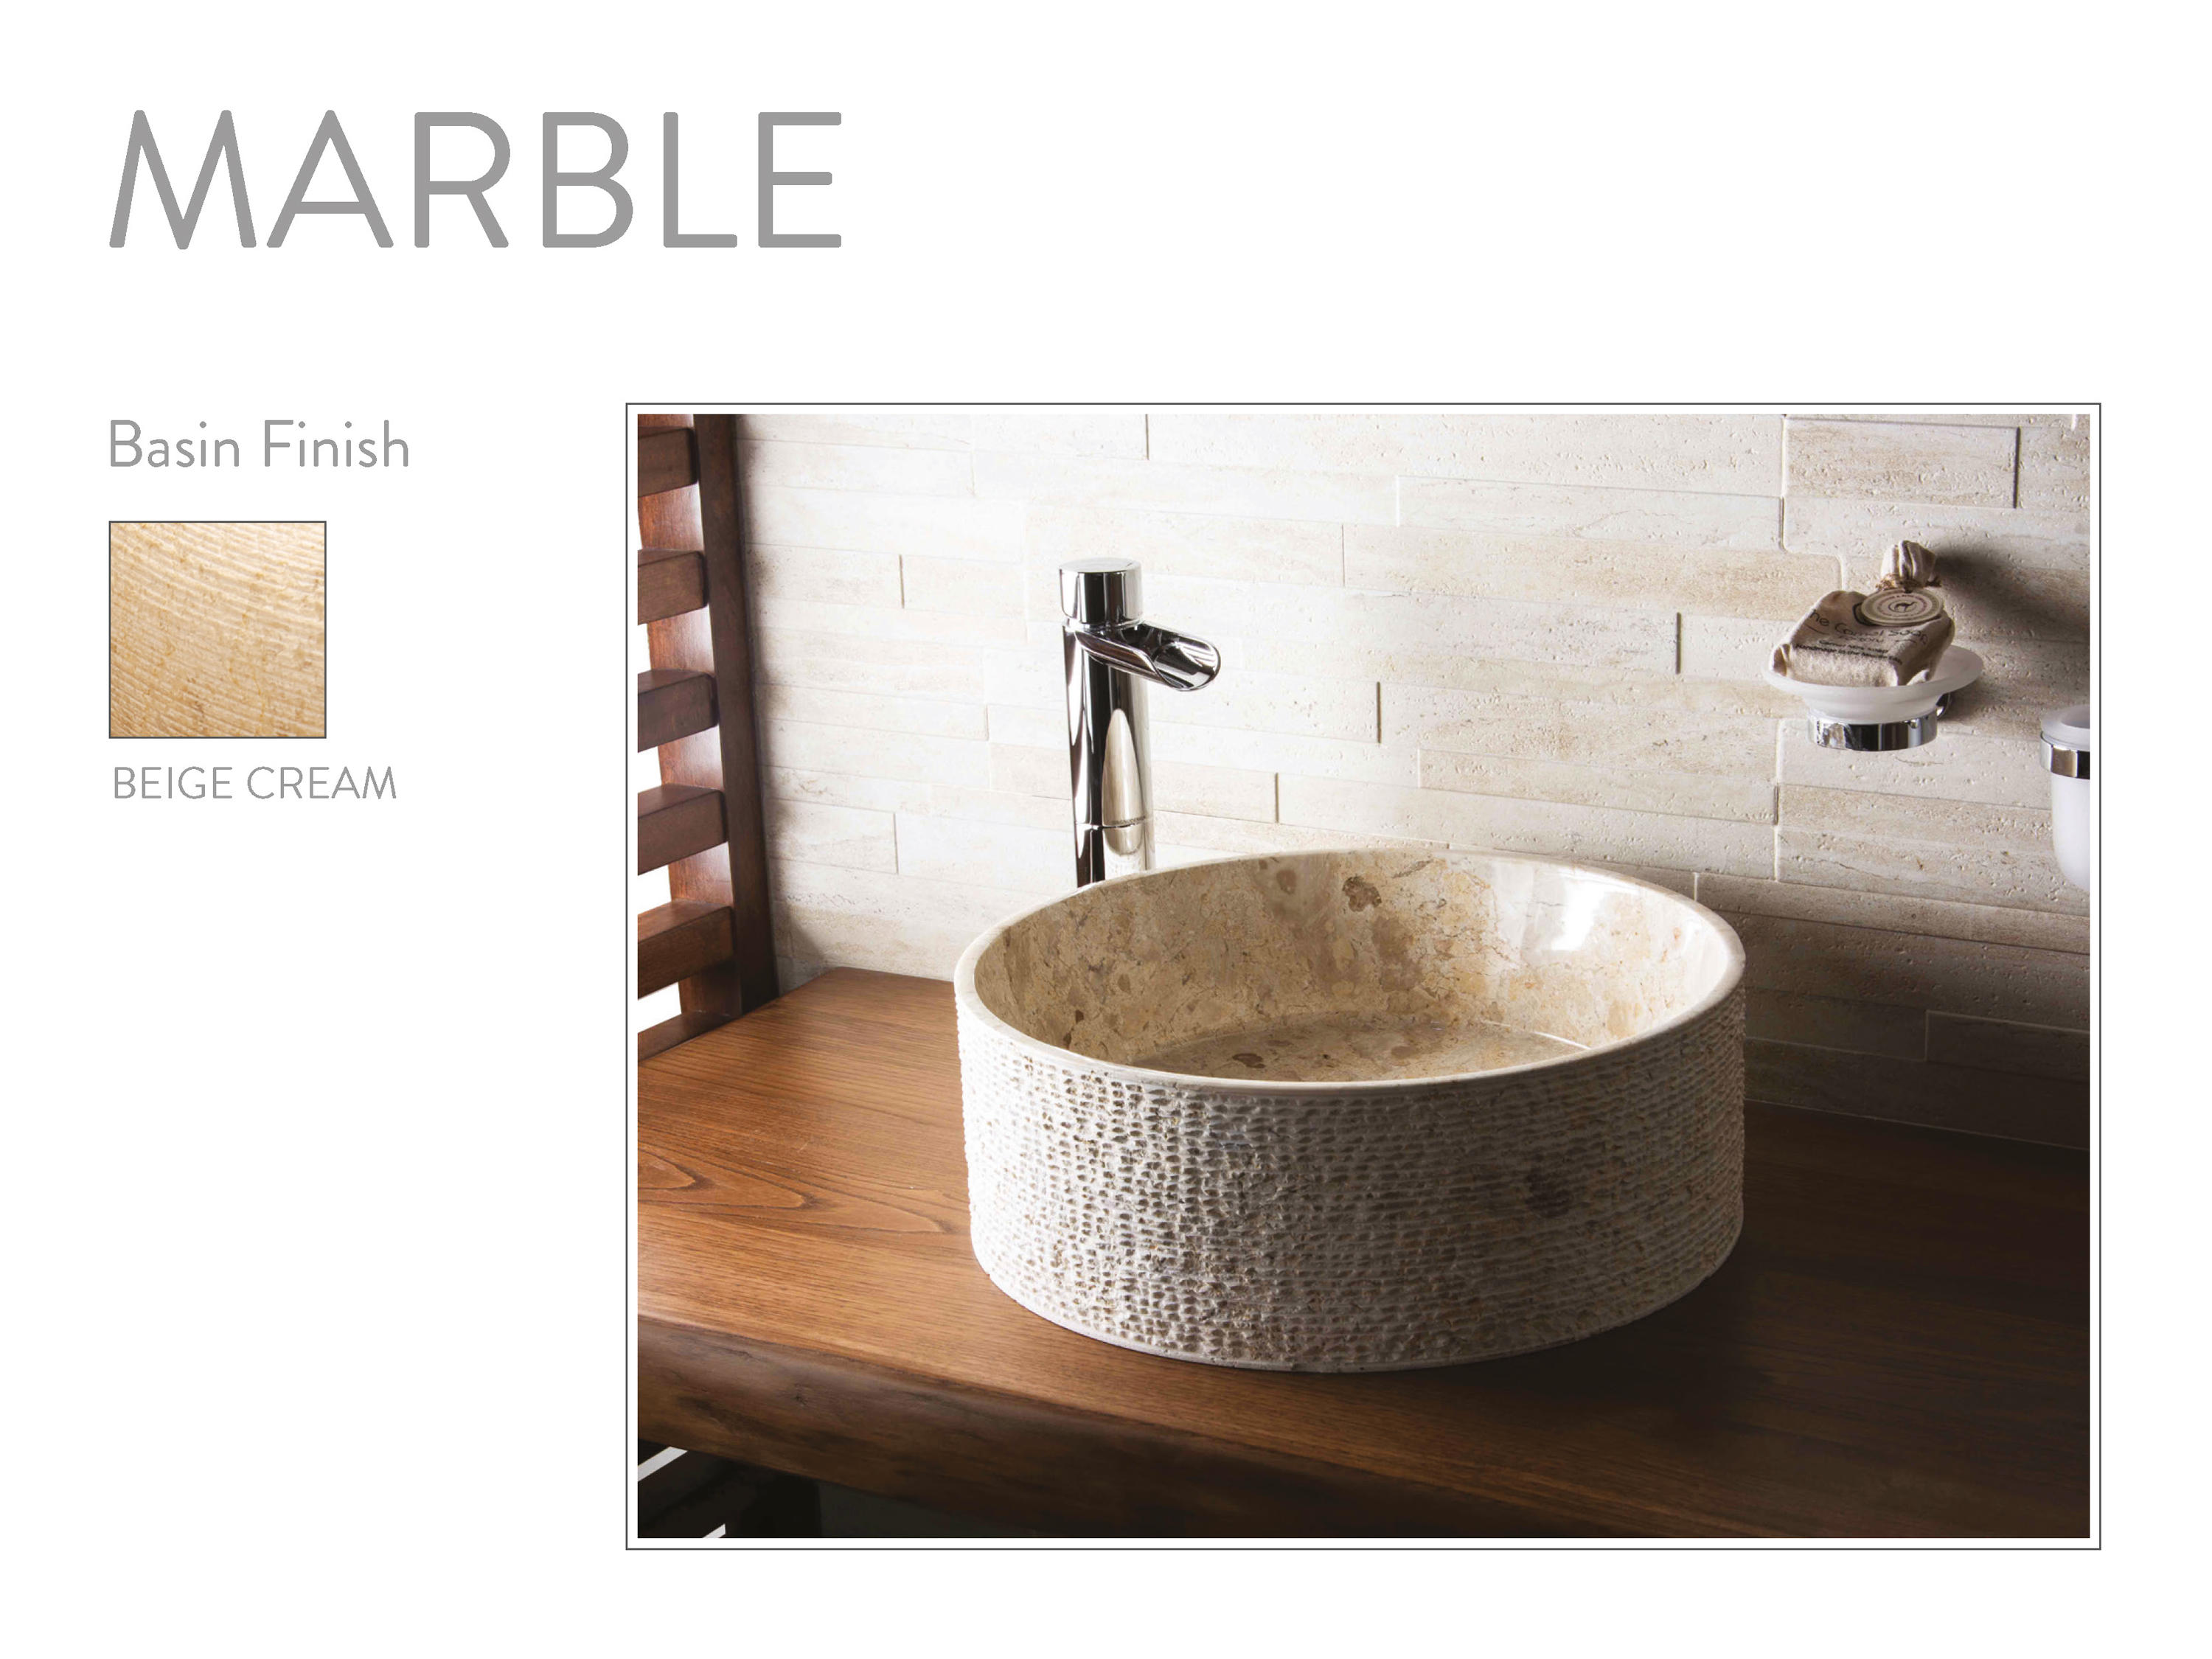 Marble Basin Marble Antigua Countertop Wash Basin Wash Basins From